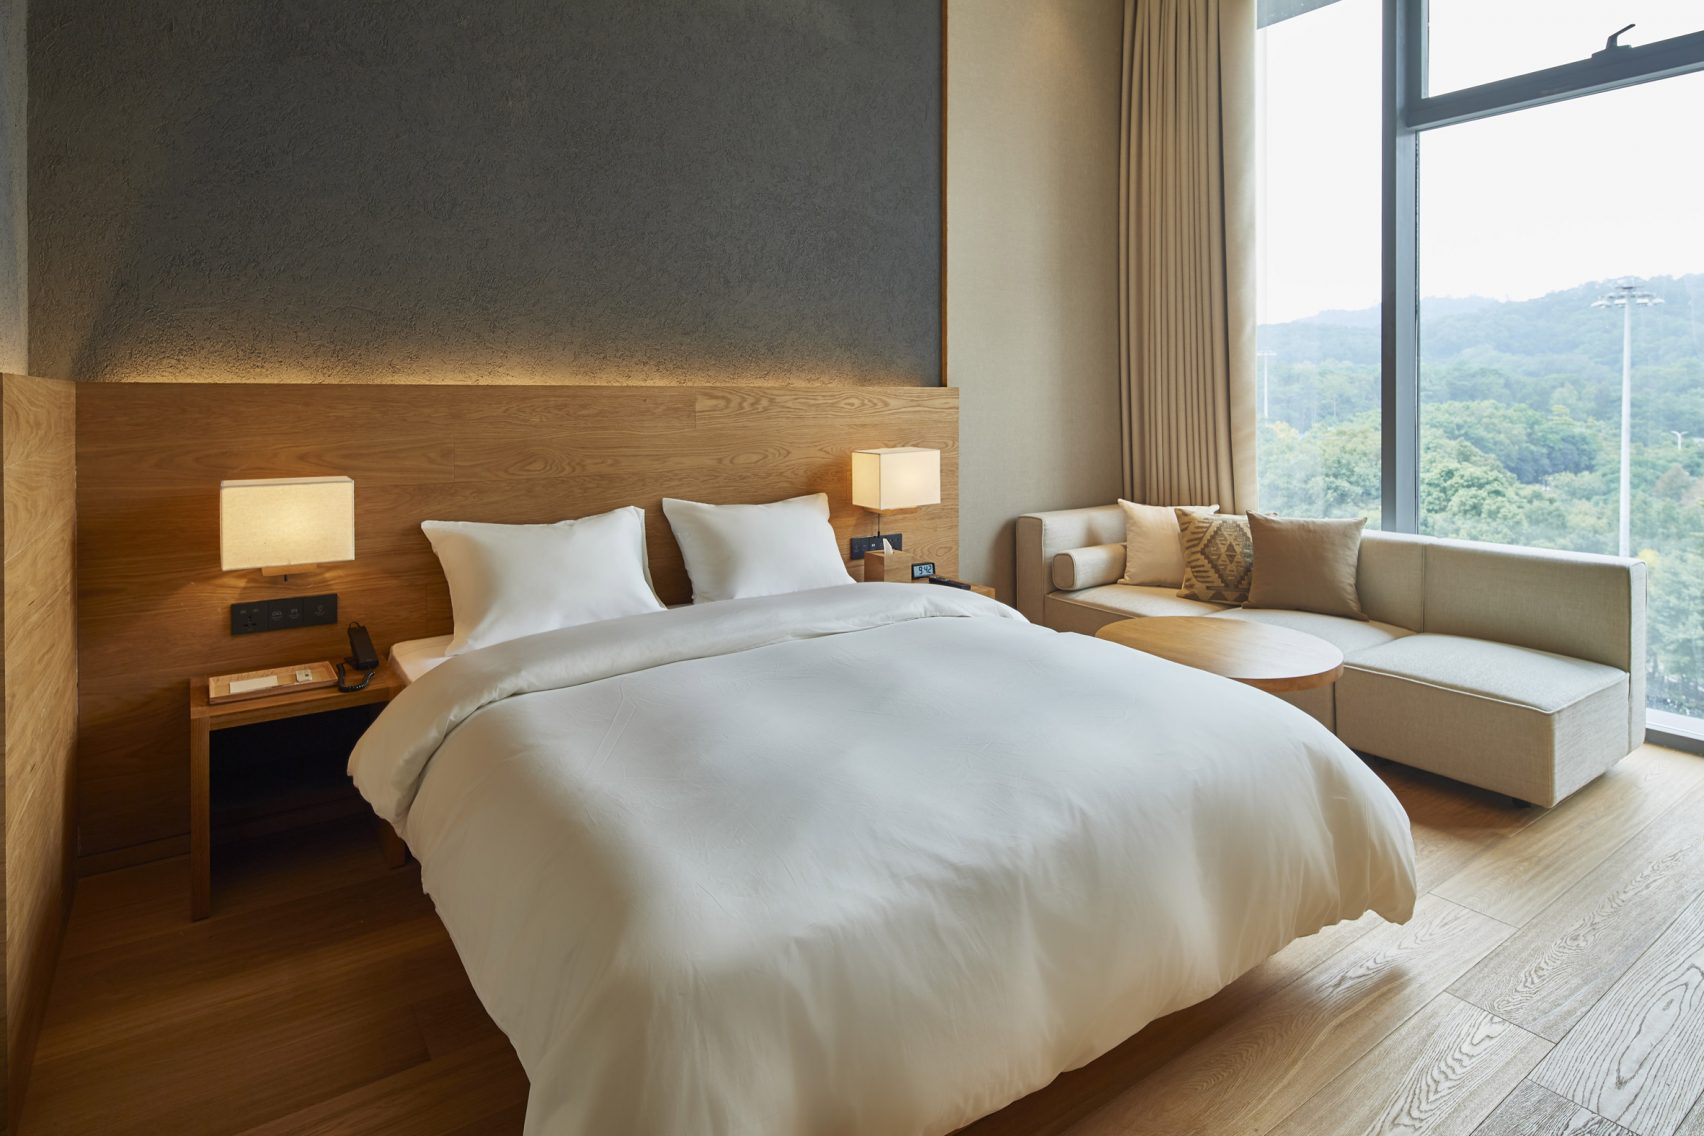 Lit Muji Hotel Room Design Trends What Travellers Want In Their